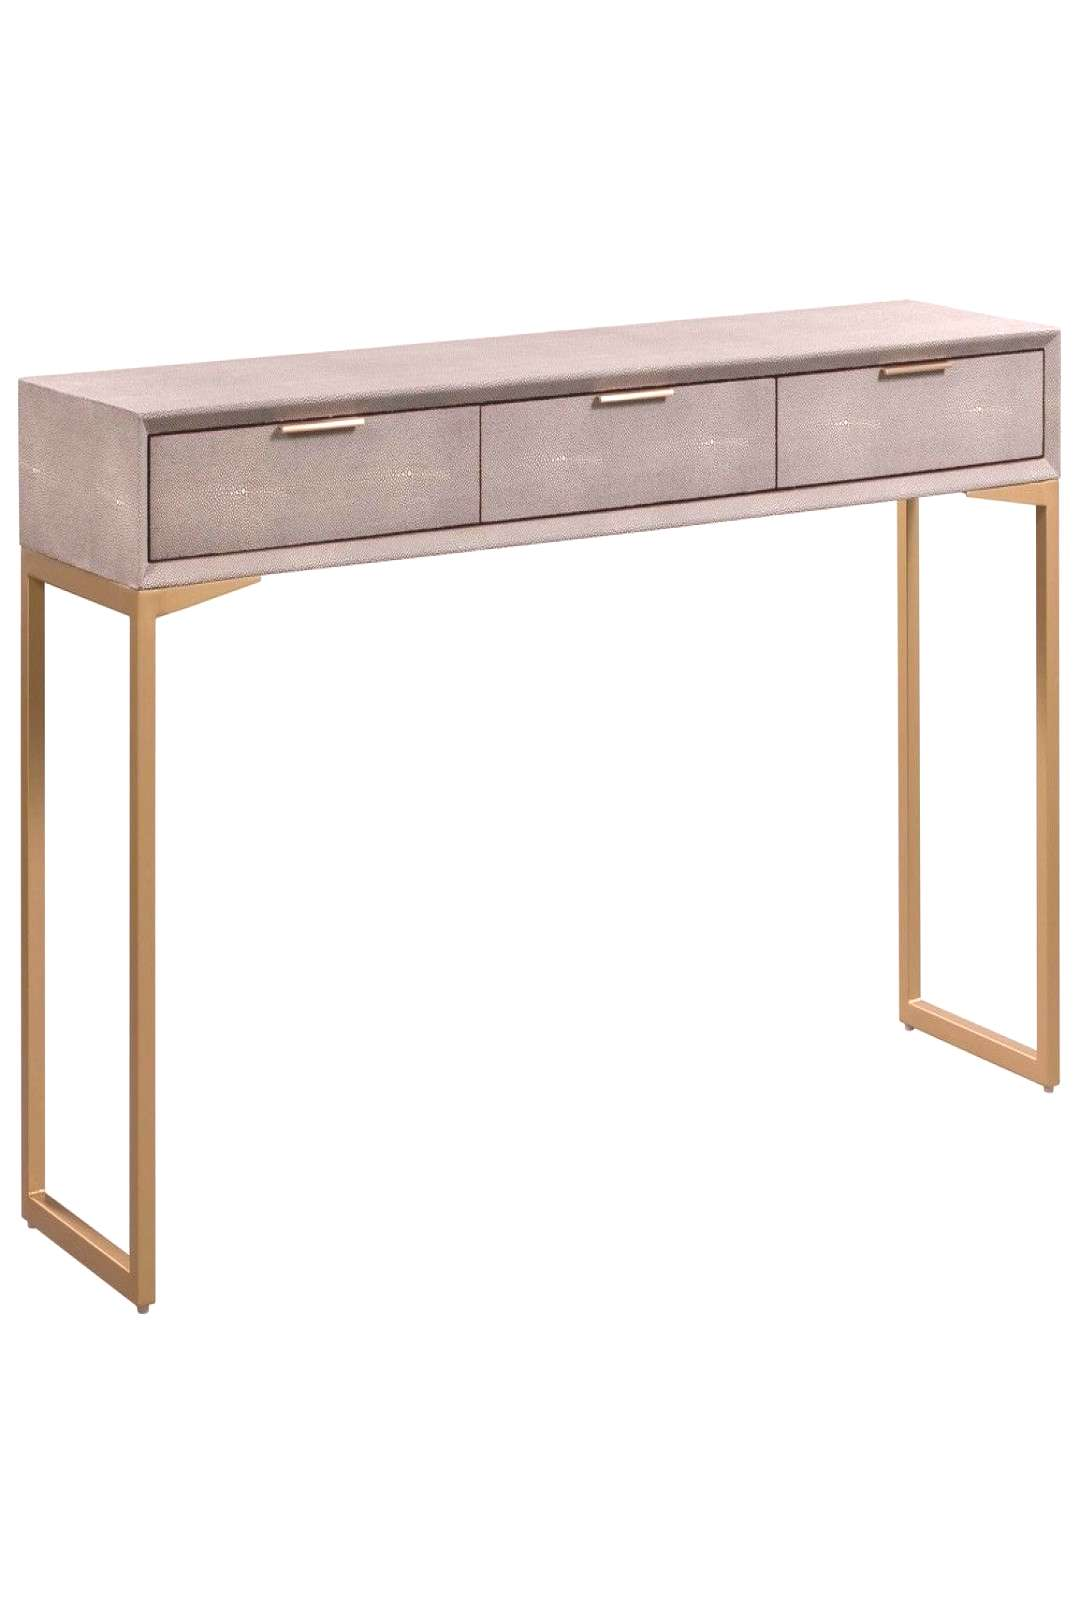 Pearson 72 quotMedia Console + Reviews | Box and BarrelShop Pearson 72 quotMedia Console. The split open